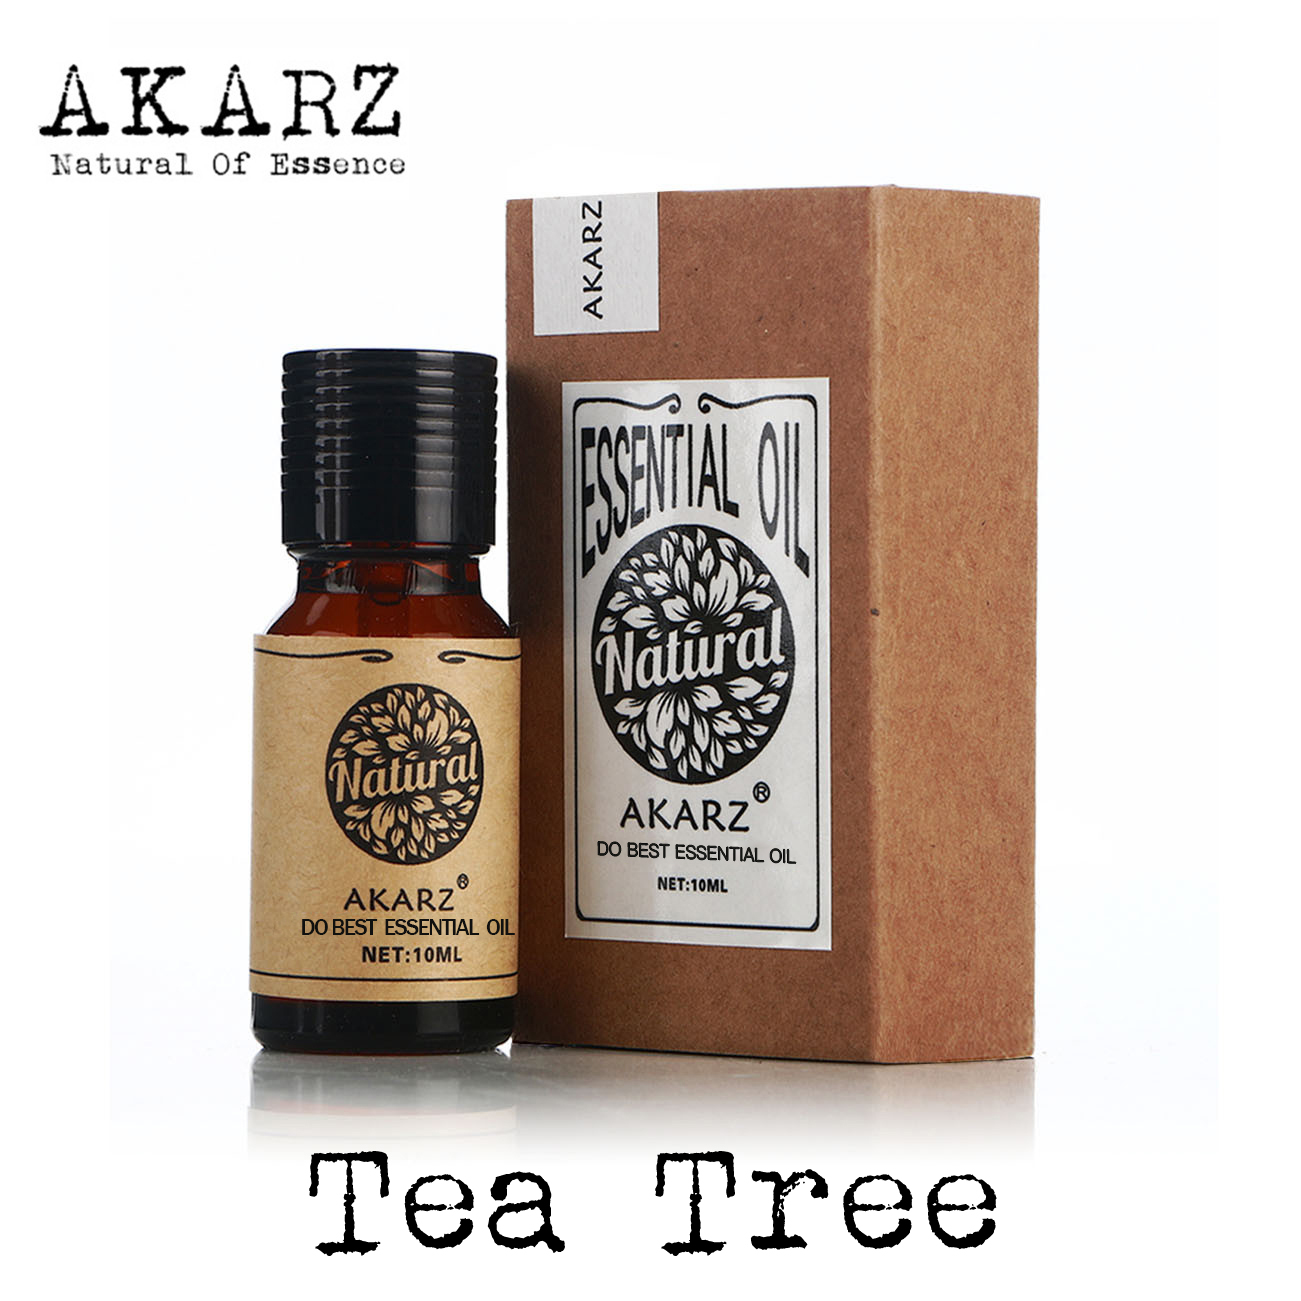 AKARZ Famous brand TEA TREE ESSENTIAL OIL NATURAL TREATMENT FOR ADULTS ORGANIC skin body massage care TEA TREE oil adriatica часы adriatica 3143 2111q коллекция twin